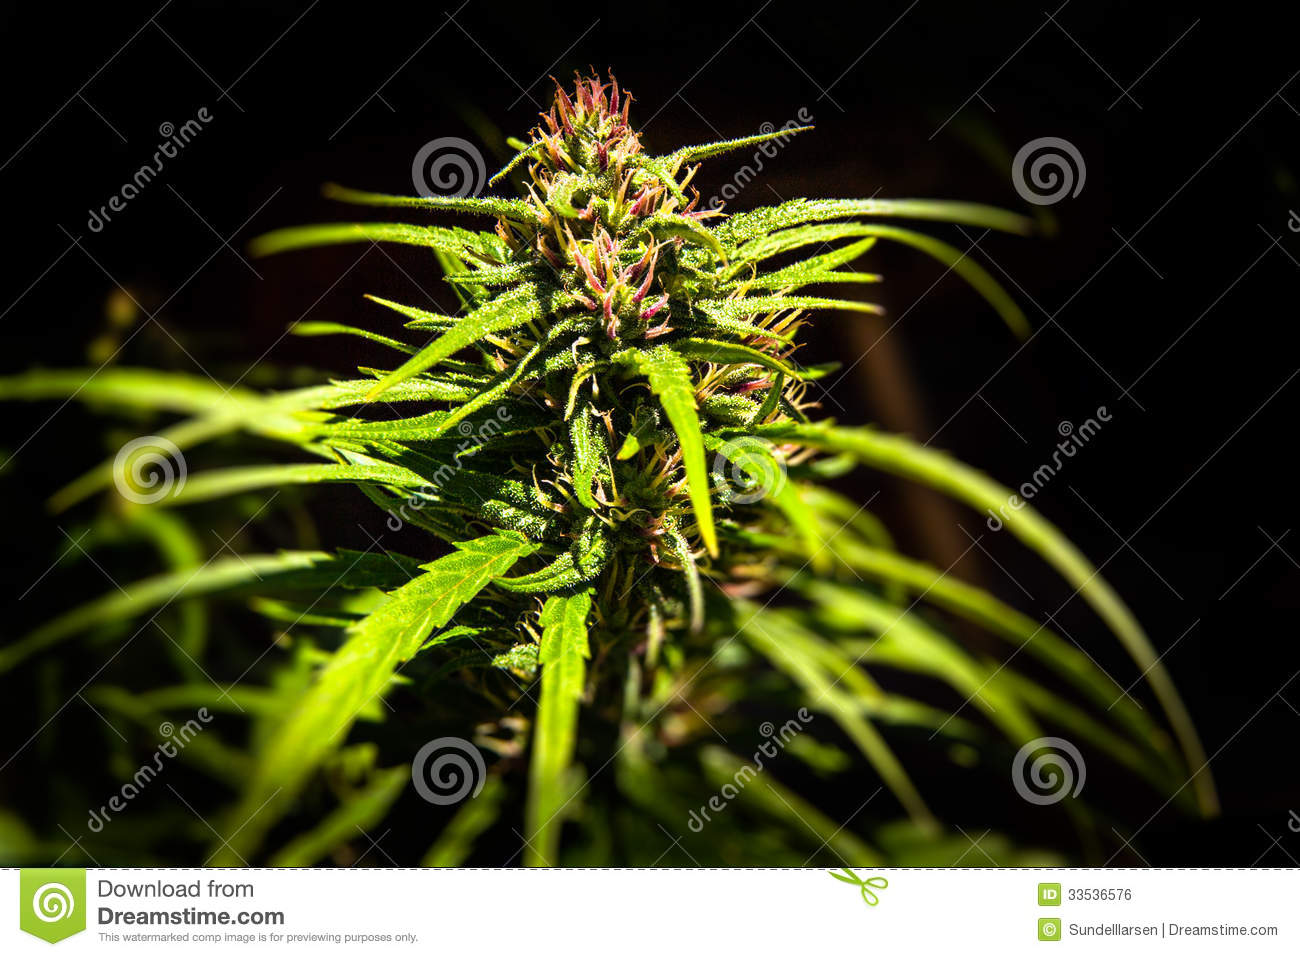 cannabis plant wallpaper black - photo #13